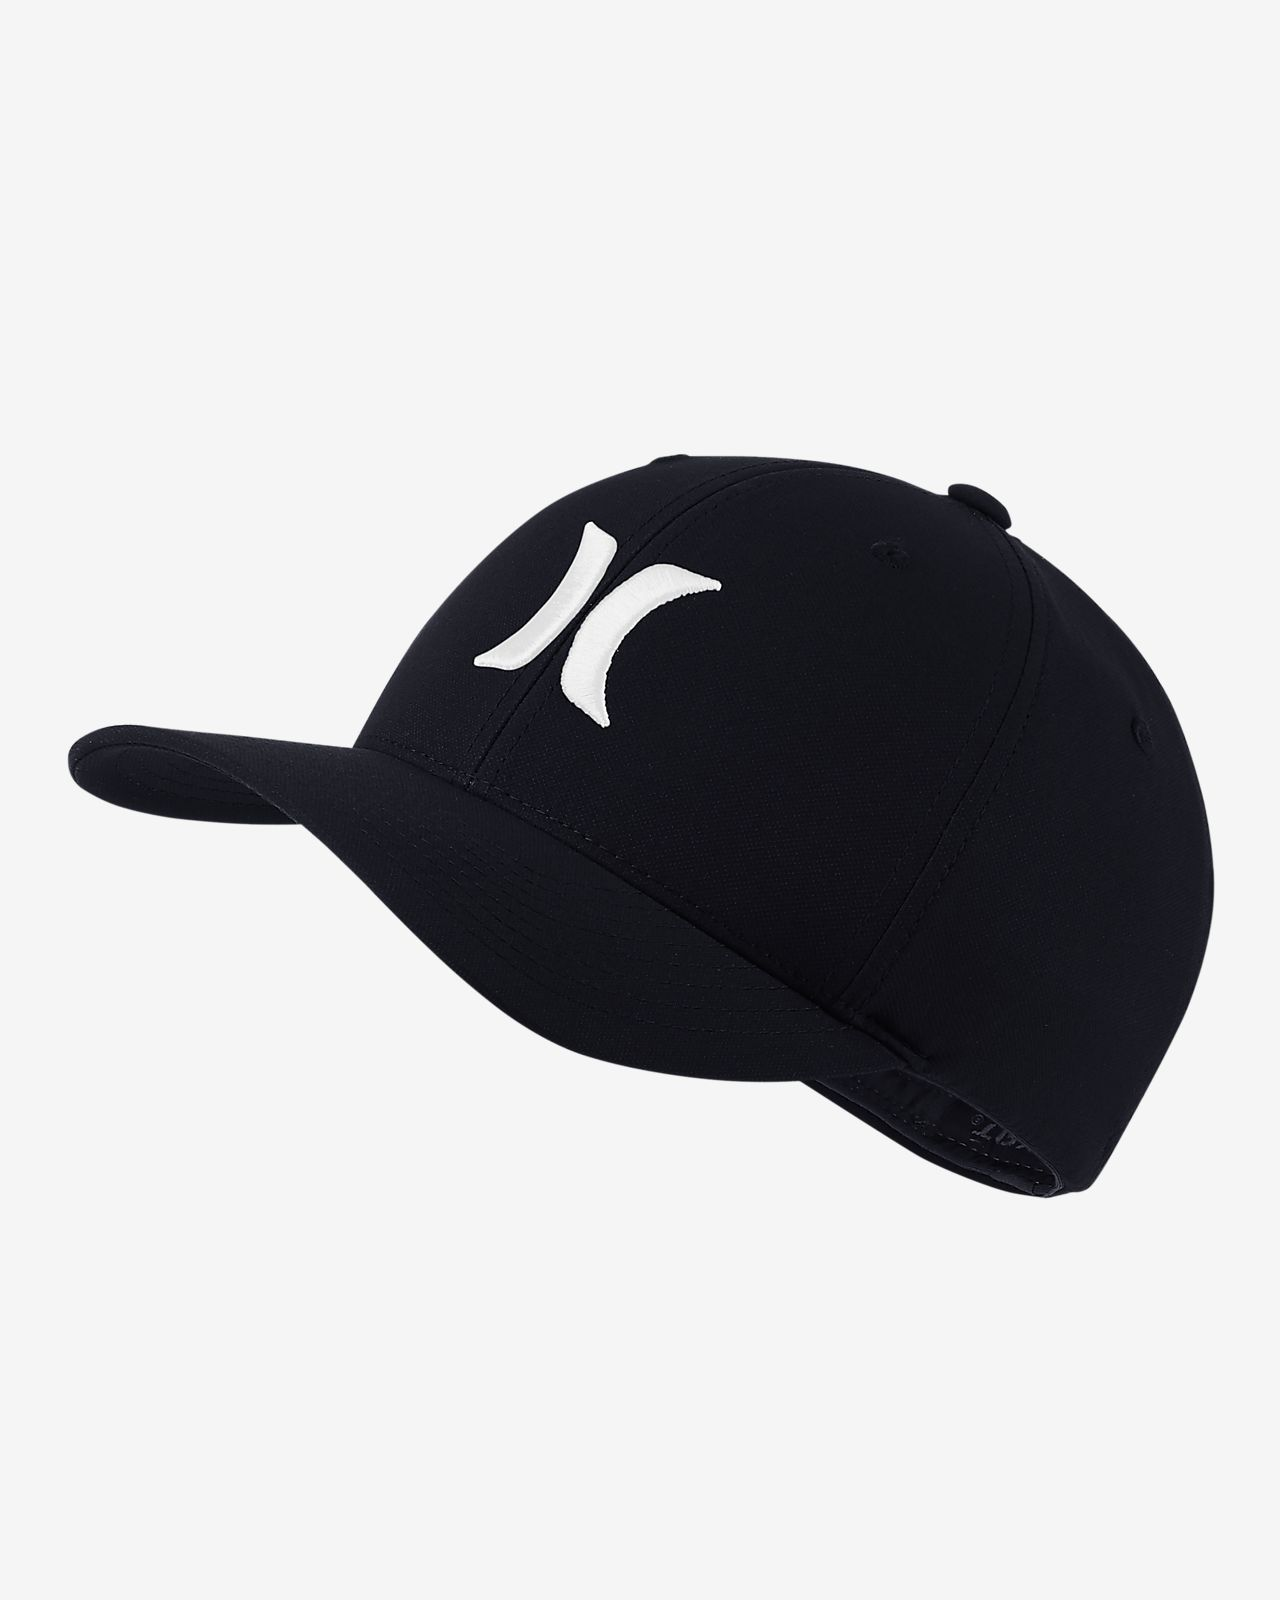 Hurley Dri-FIT One And Only Unisex Fitted Hat. Nike.com ZA 1bcc07d1b229